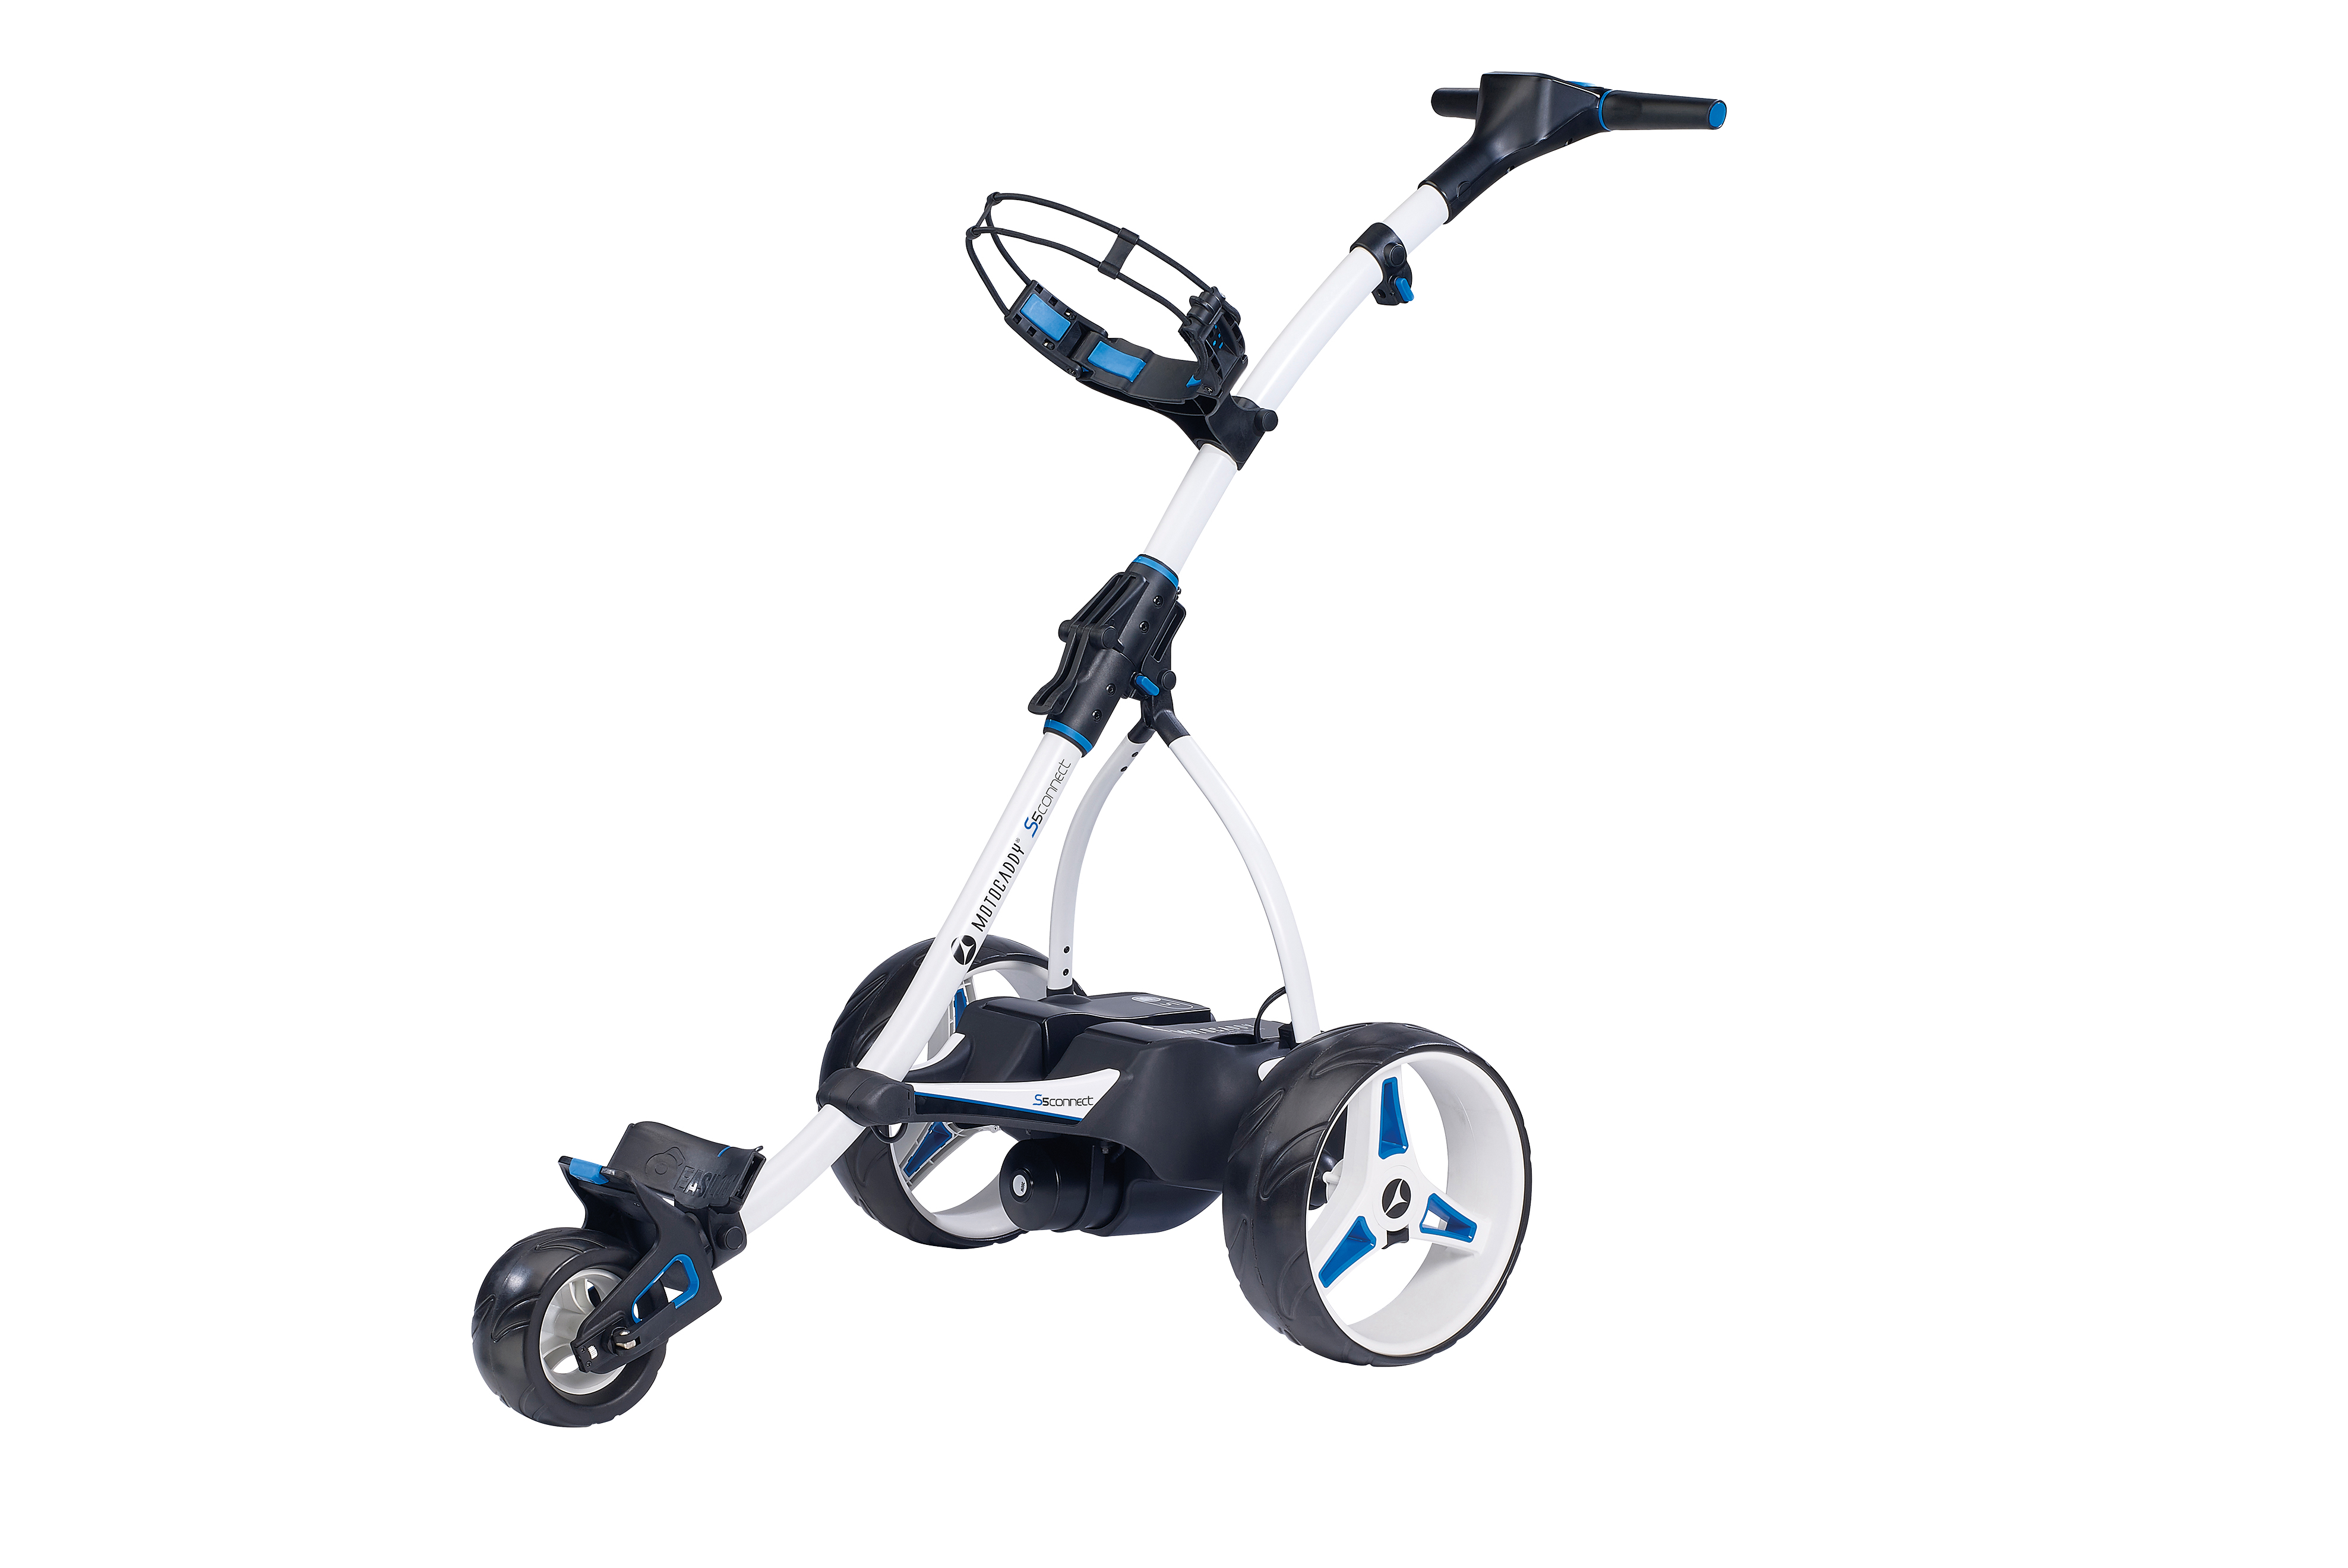 Motocaddy S5 Connect electric trolley review